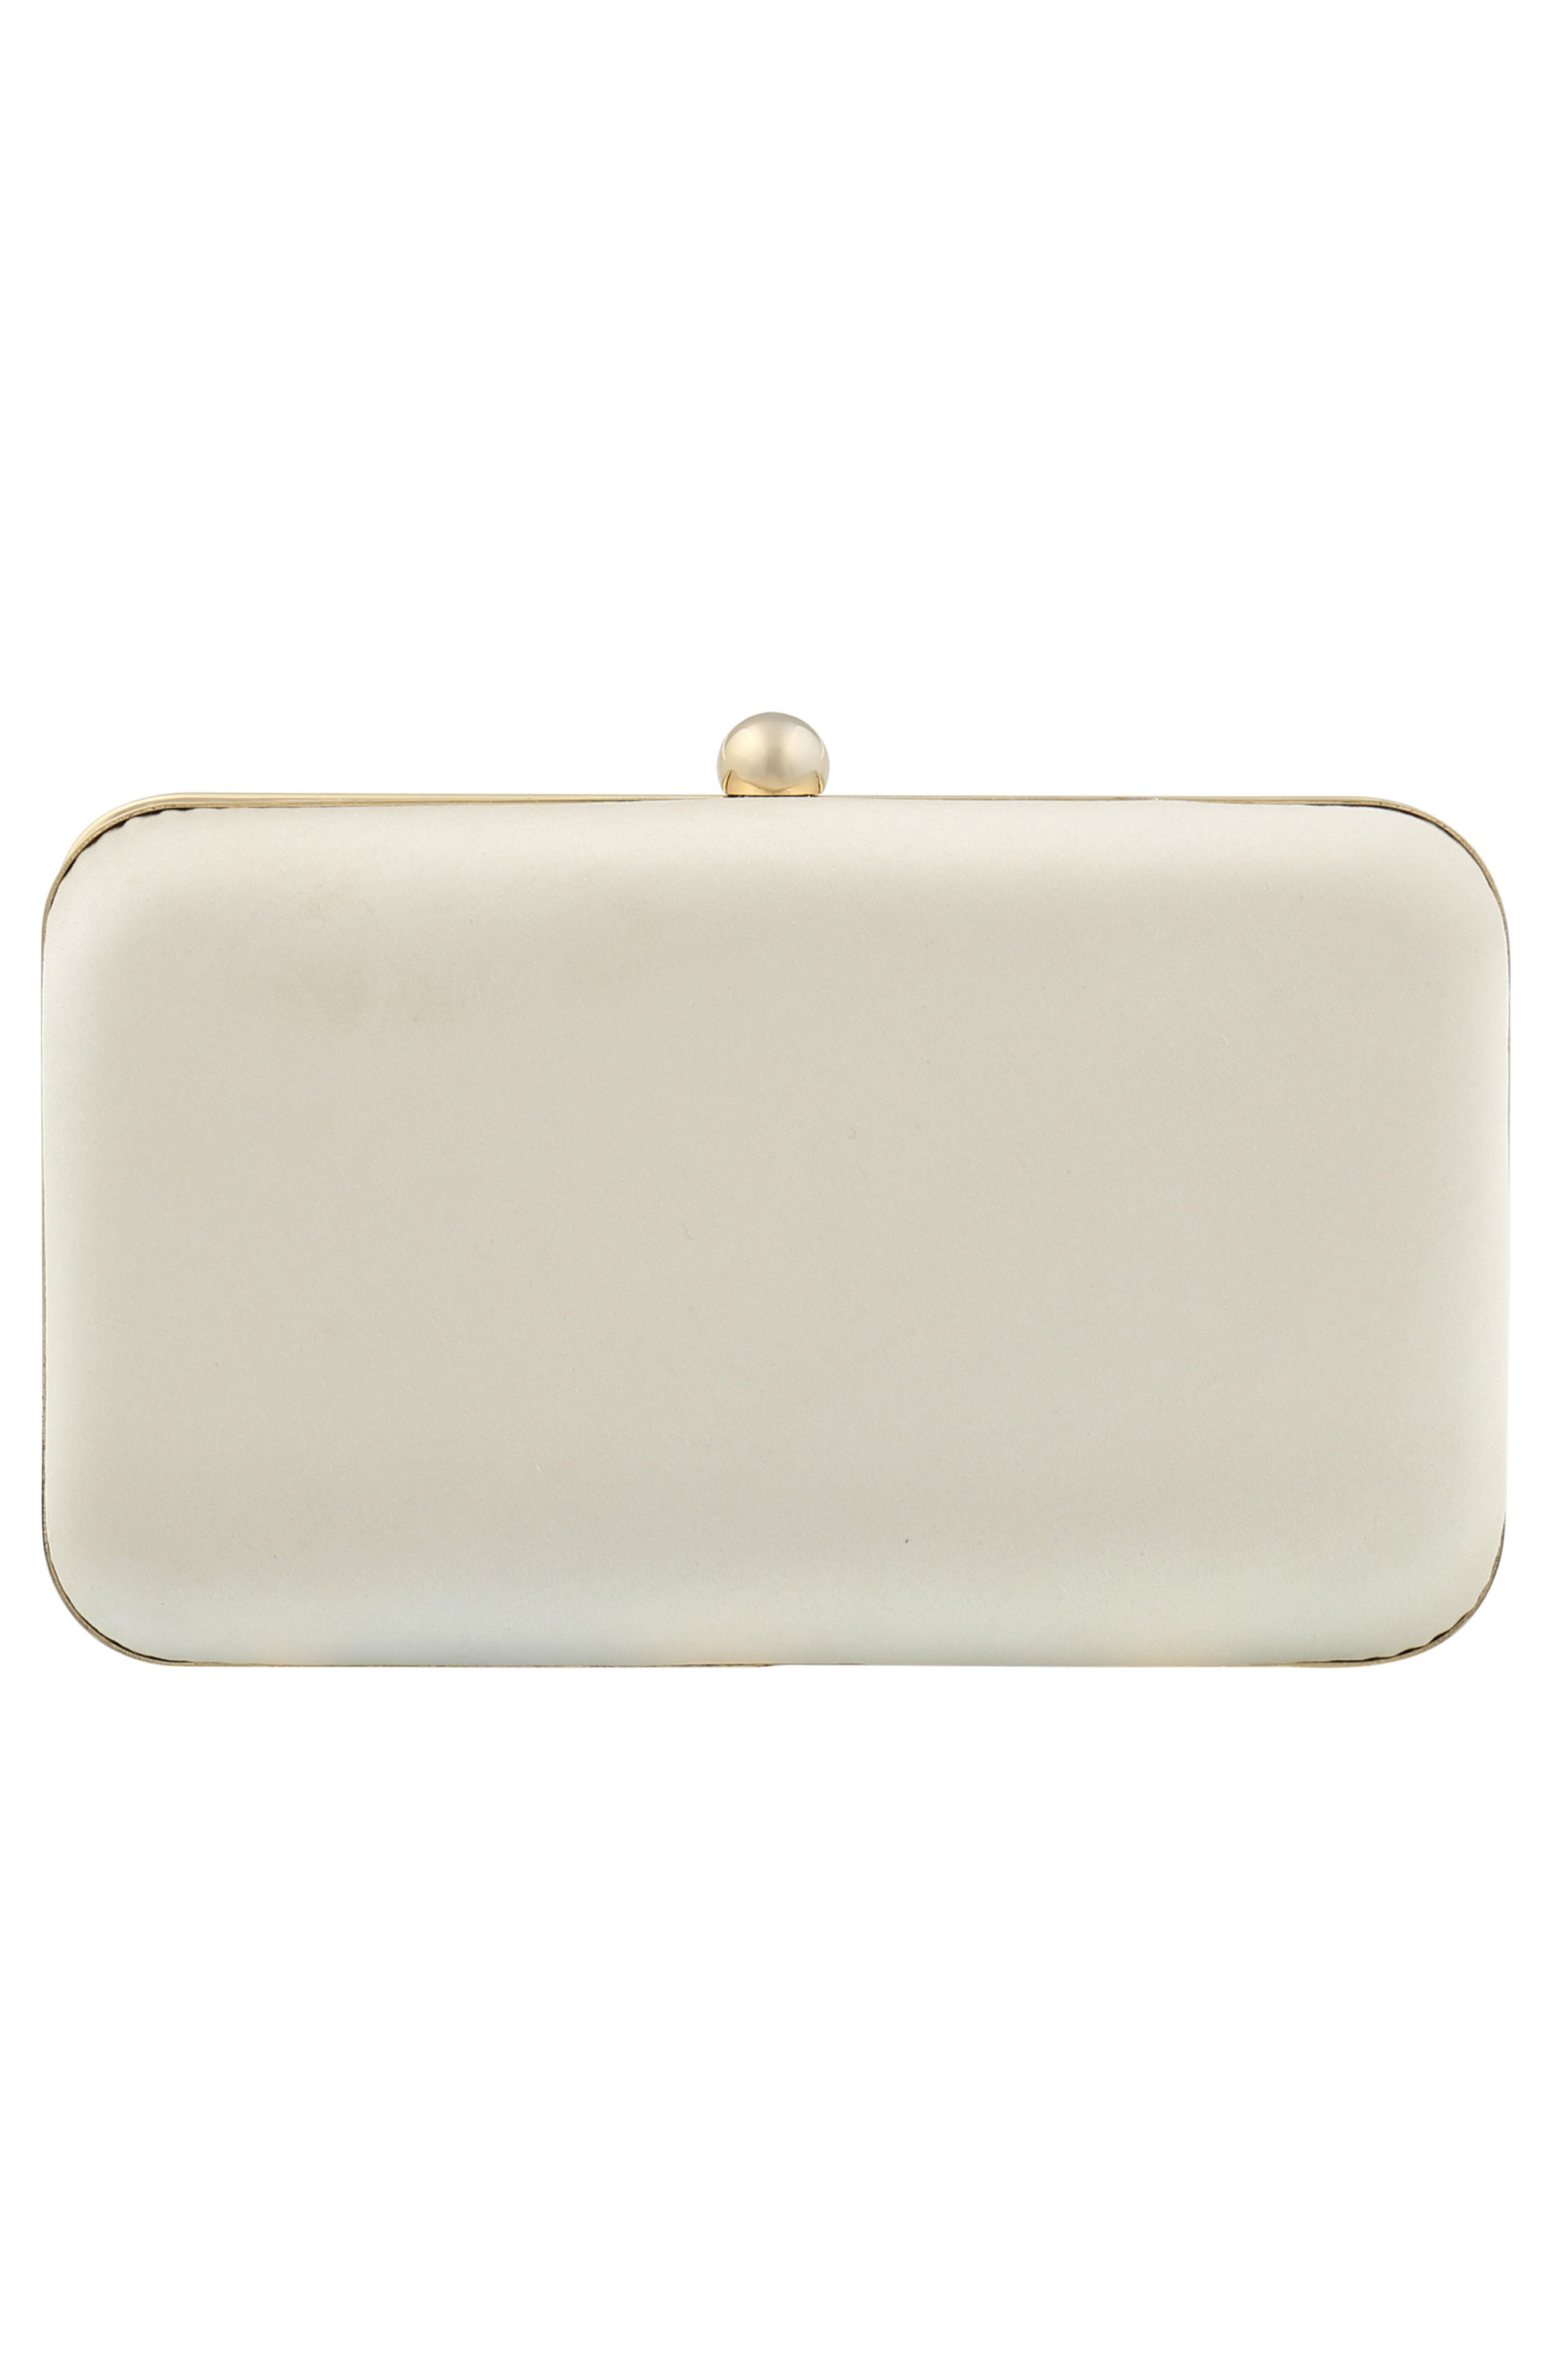 Guardian Clutch,                             Alternate thumbnail 2, color,                             IVORY